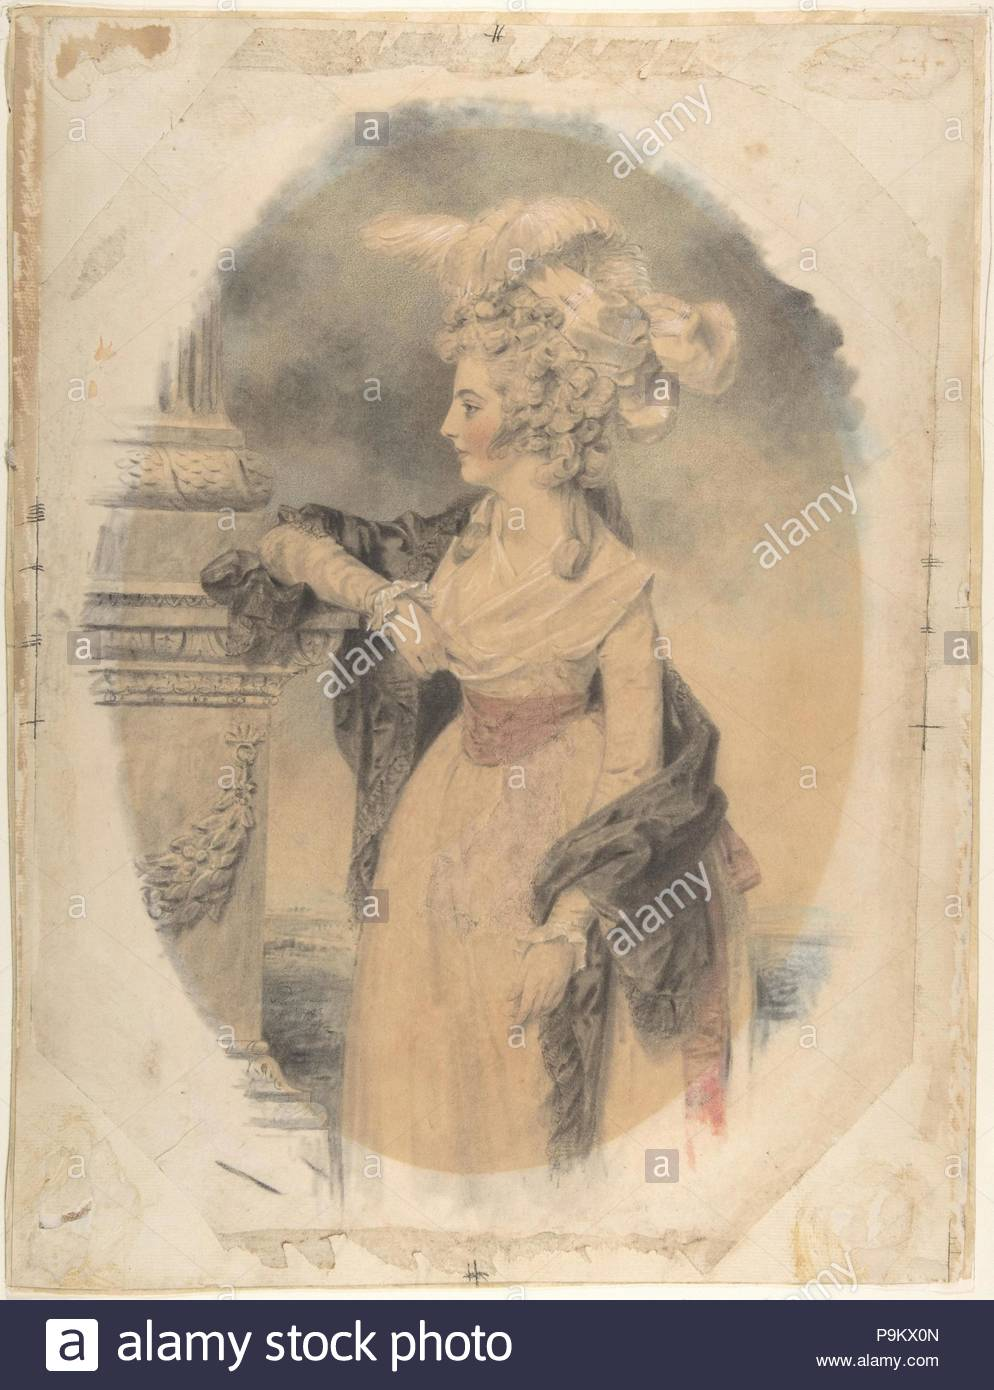 Elizabeth Ford, later Lady Colville of Culross, 1785, Watercolor, colored chalk, and graphite, sheet: 17 x 13 in. (43.2 x 33 cm), Drawings, John Downman (British, Ruabon, Wales 1750–1824 Wrexham, Wales), Dowman represents Elizabeth, second daughter of Francis Ford of Lears, Barbados in her early twenties. Wearing a feathered headress and dark cloak she leans on the base of a classical column, with her face shown in profile. - Stock Image